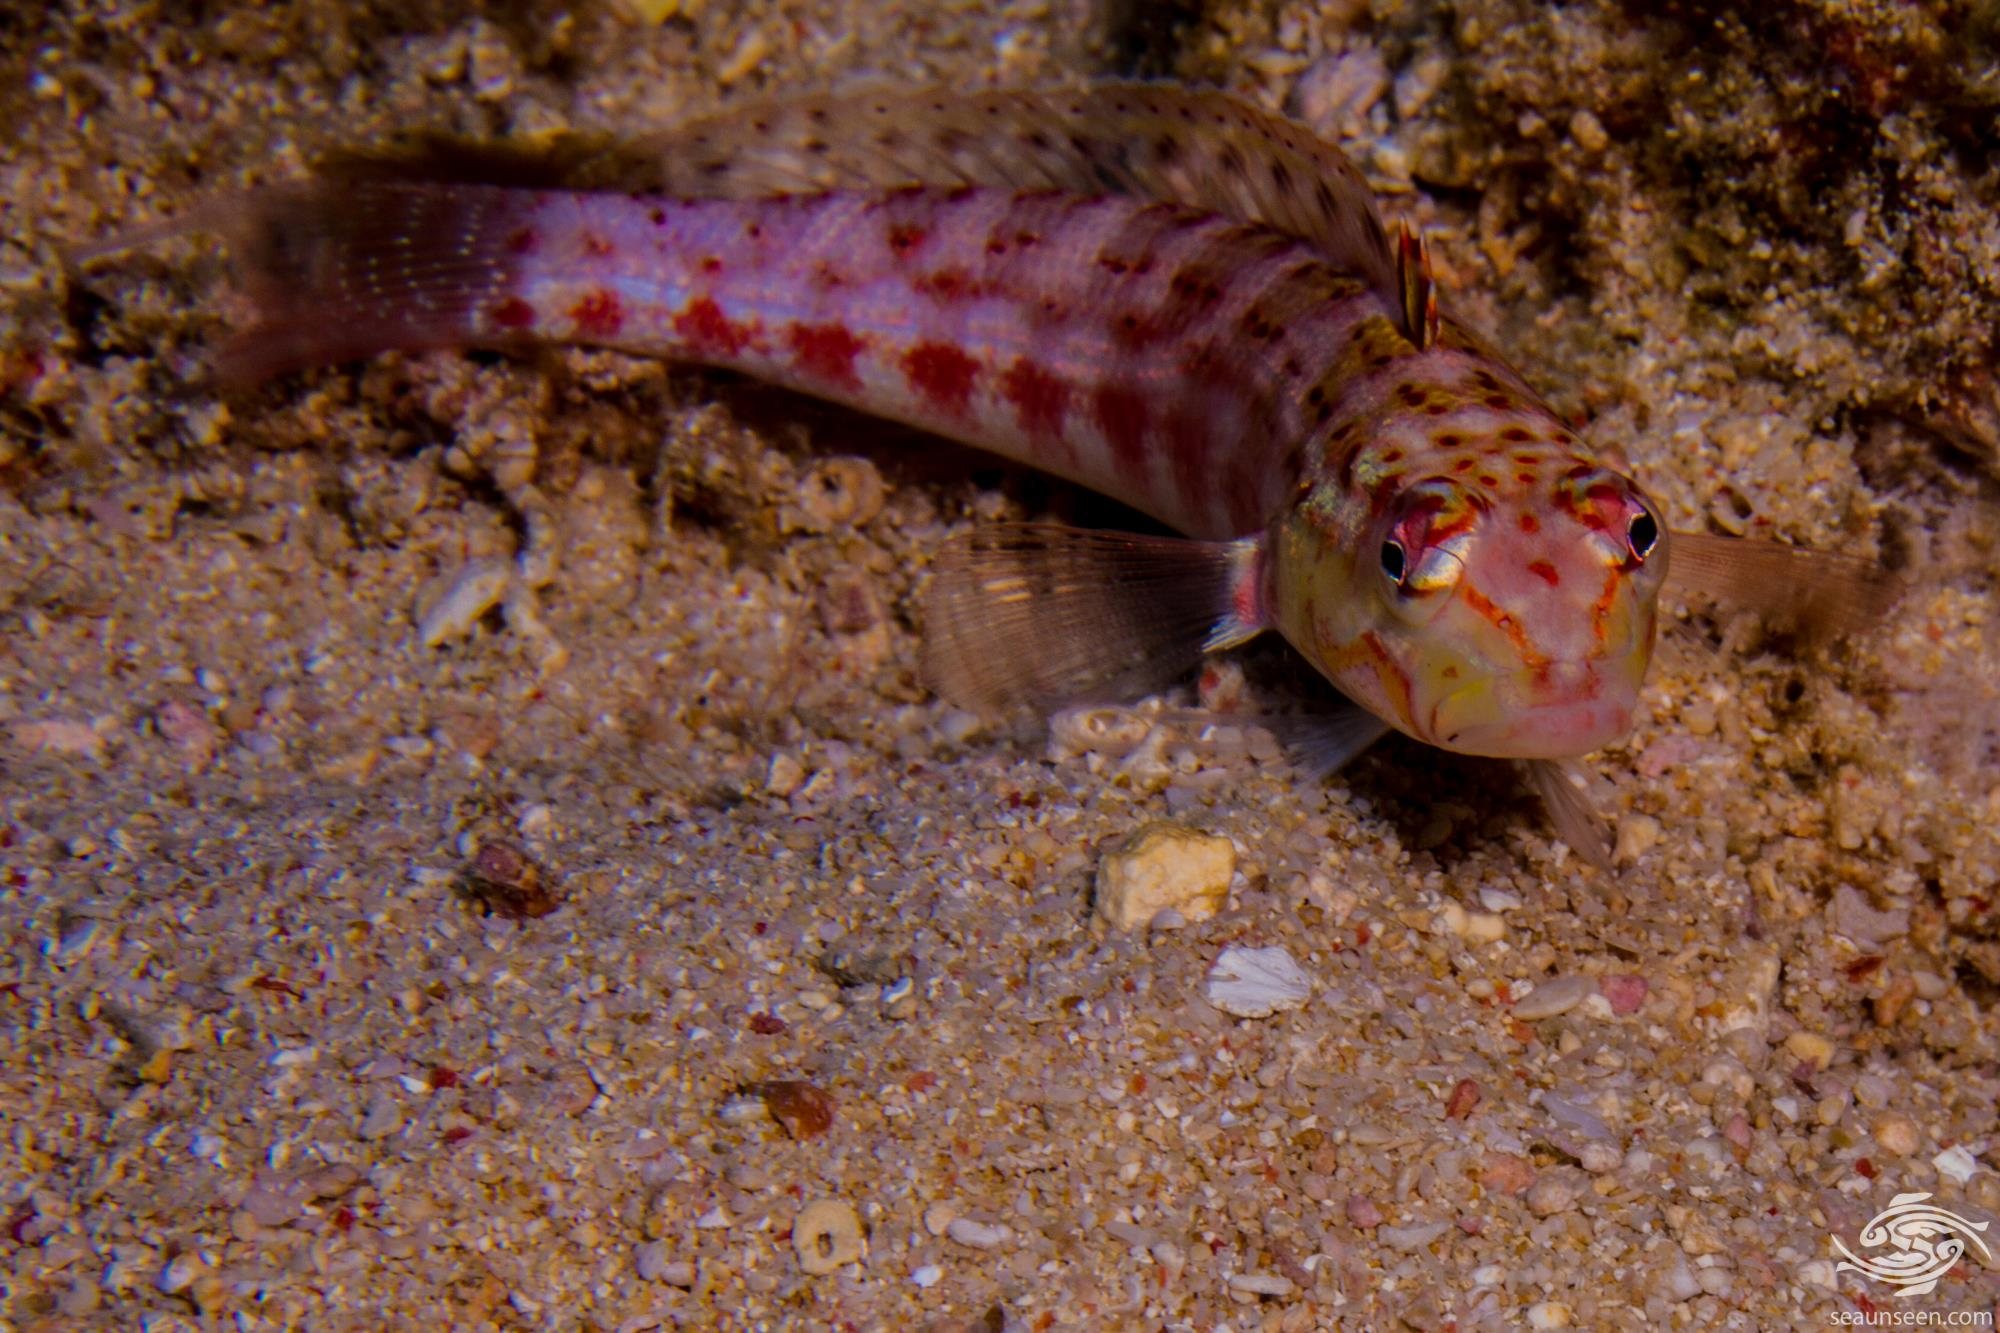 Redspotted sandperch (Parapercis schauinslandii) also known as the Rosy Sandperch